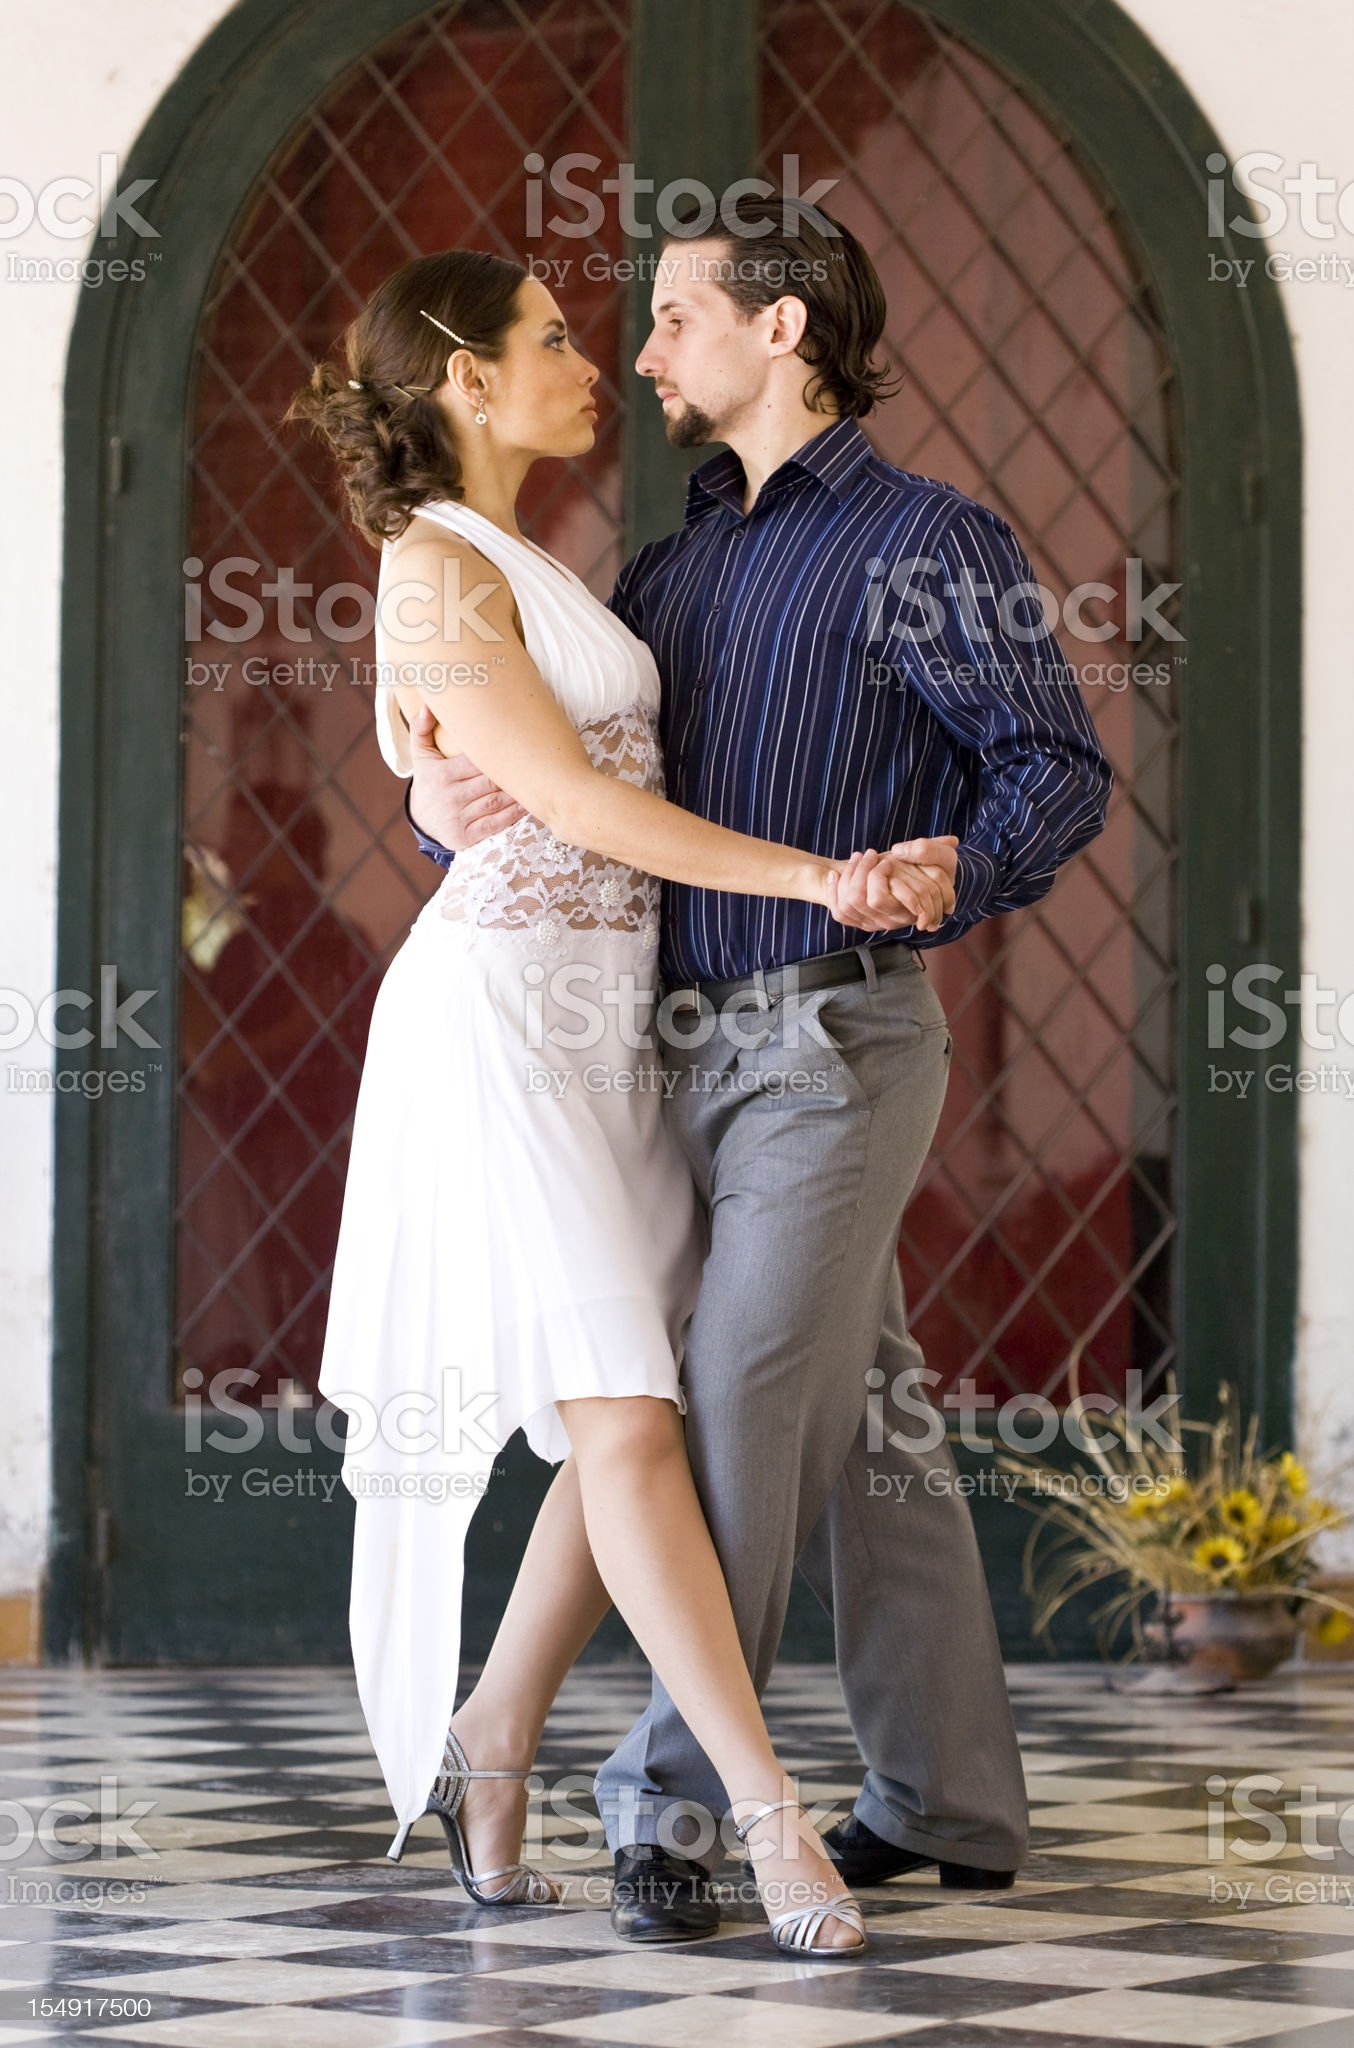 Tango in Argentina royalty-free stock photo